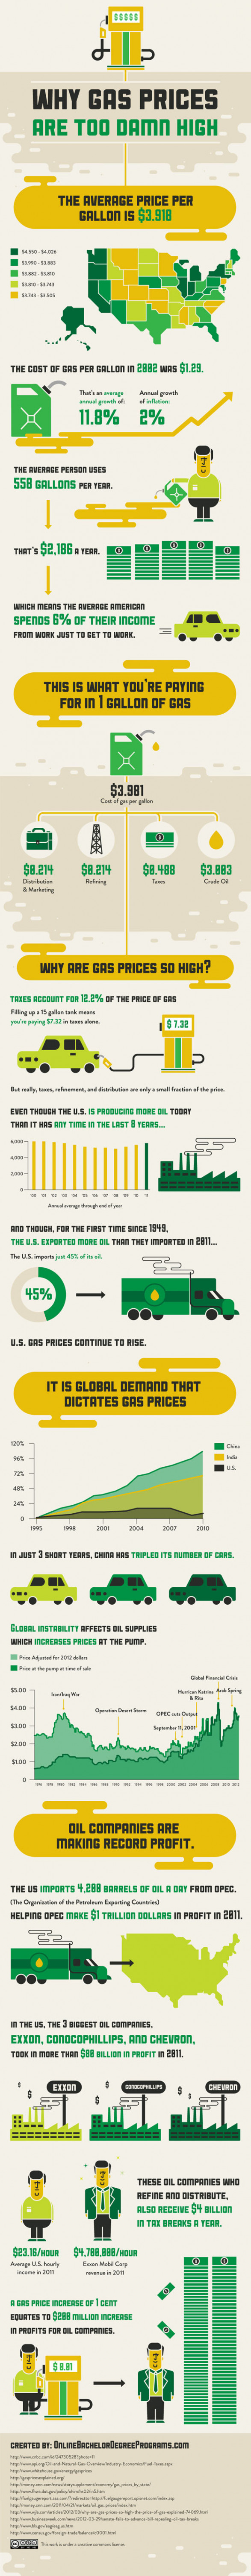 WhyGasPricesAreSoDamnHigh 4f977a38545e4 w587 Why Gas Prices are Too Damn High (Infographic)